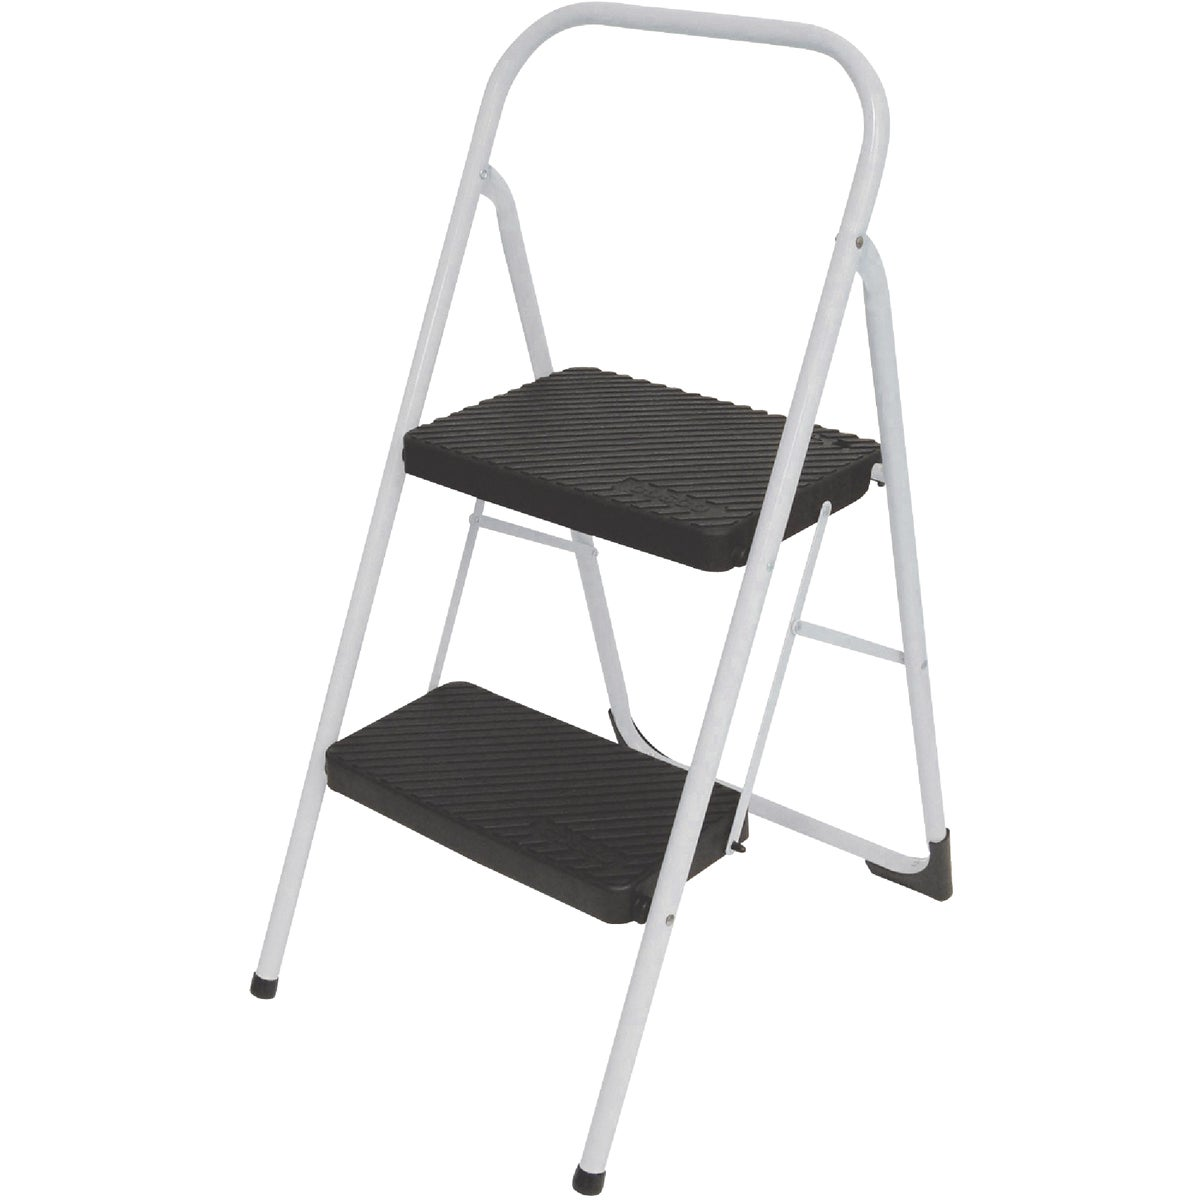 Cosco Home & Office FOLDING STEP STOOL 11-565CLGG4